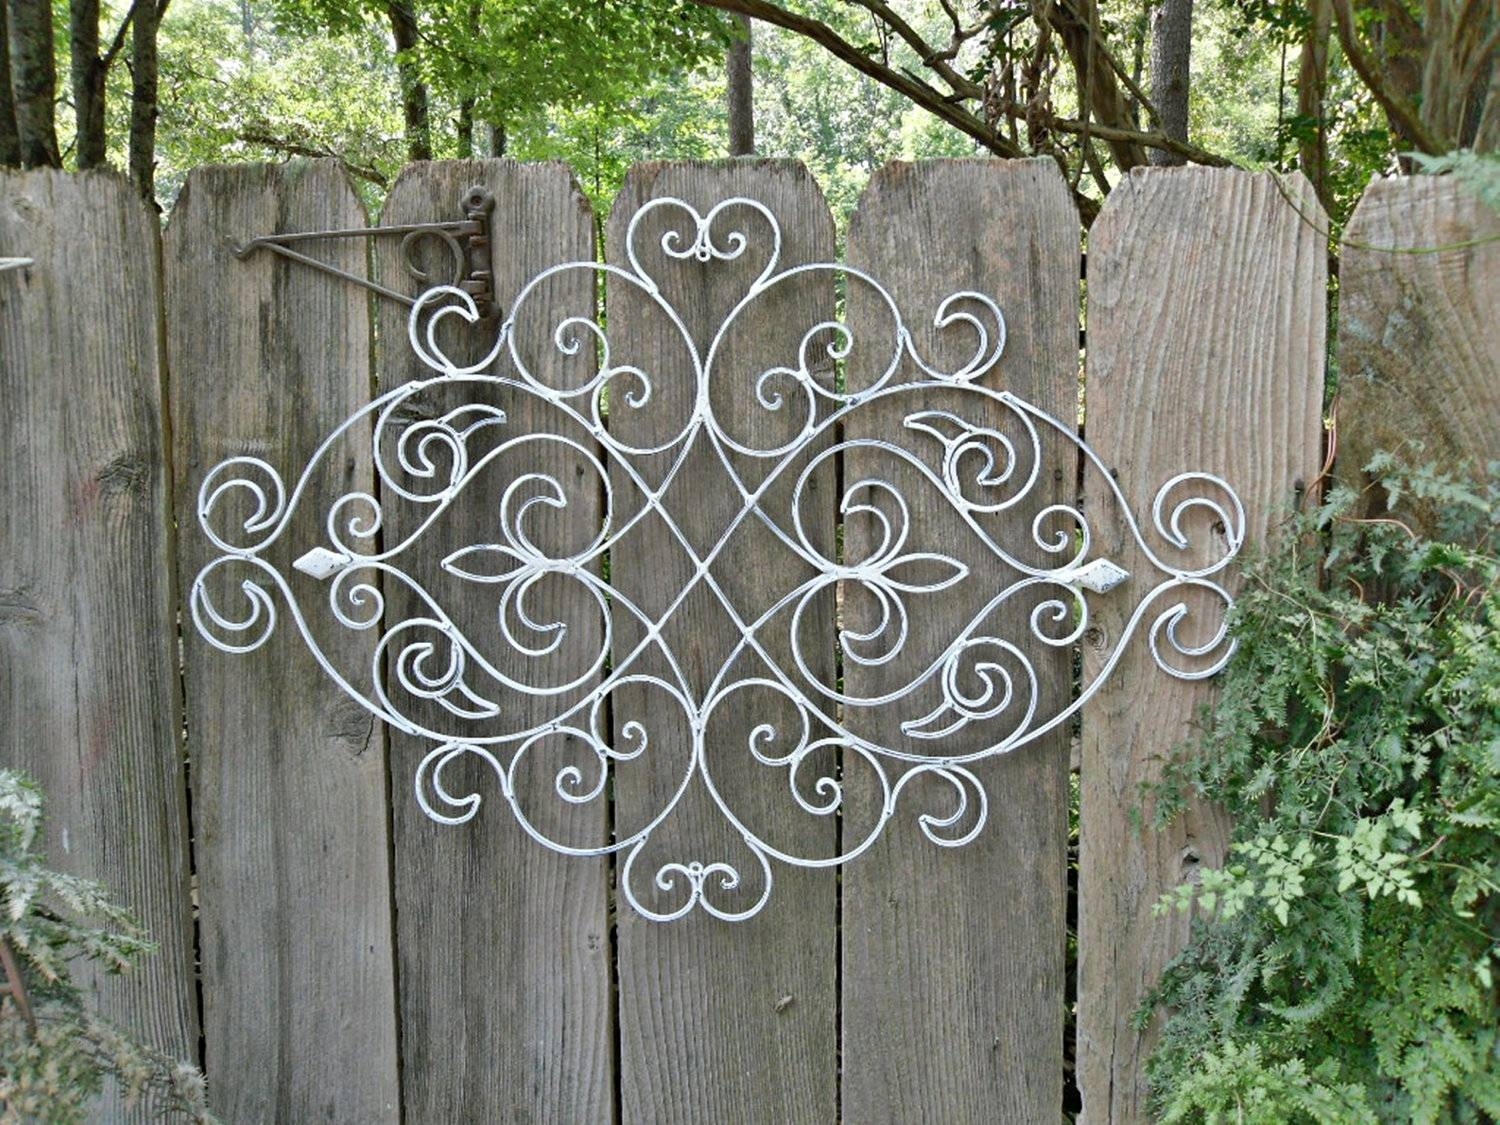 Stupendous Large Outdoor Metal Wall Art Uk Gracie Iron Wall Art With 2018 Large Metal Wall Art For Outdoor (View 18 of 20)